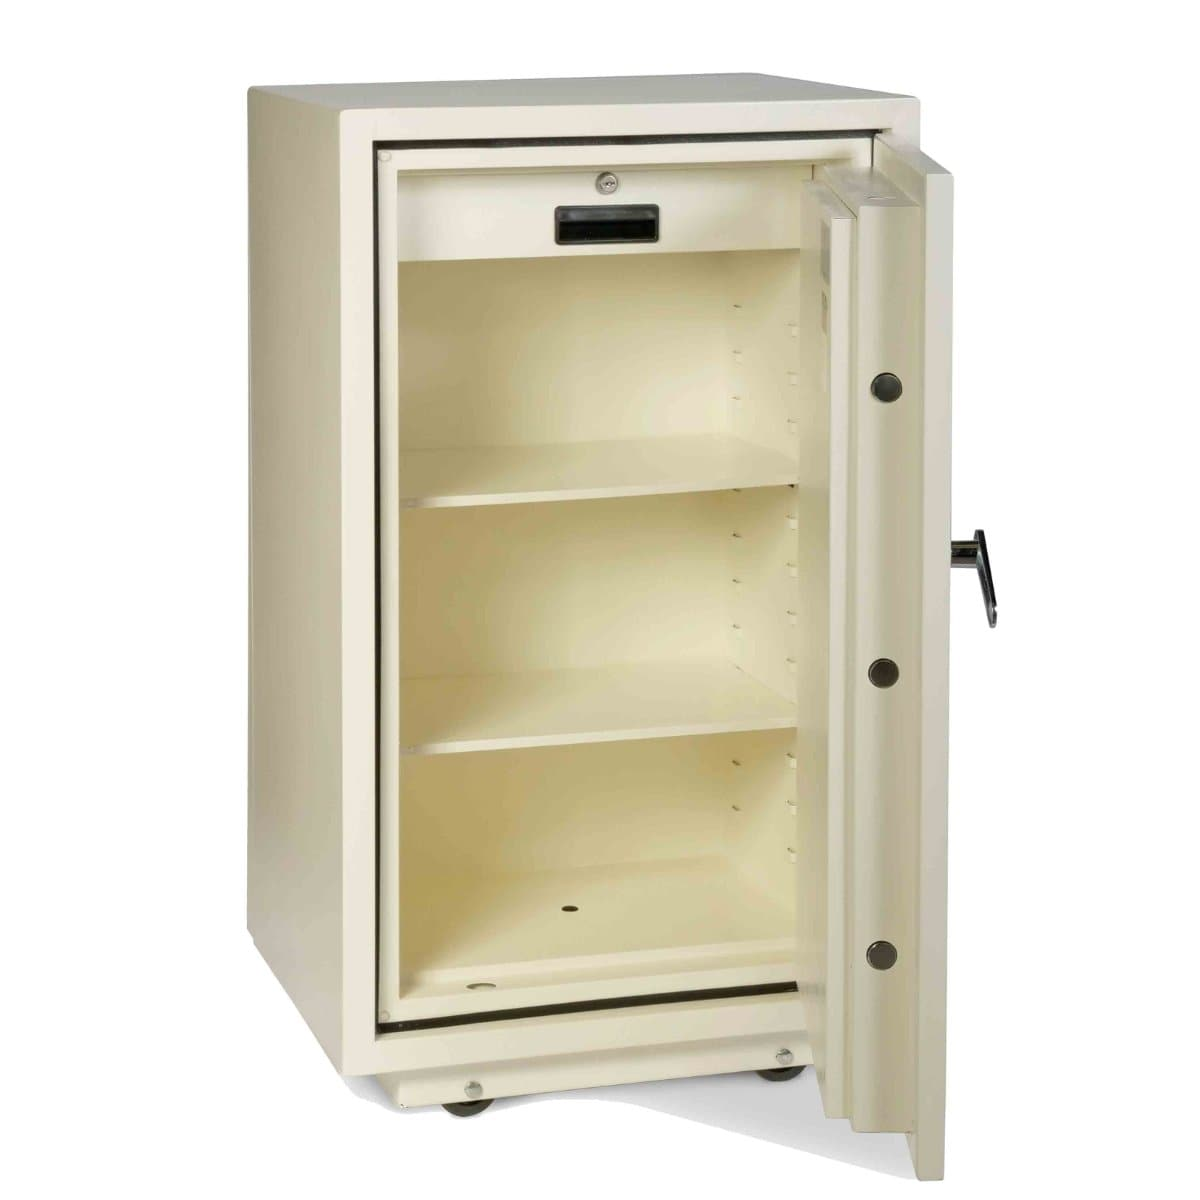 Valberg FRS-93 EL Fire Resistant Safe, Digital & Key Lock, White